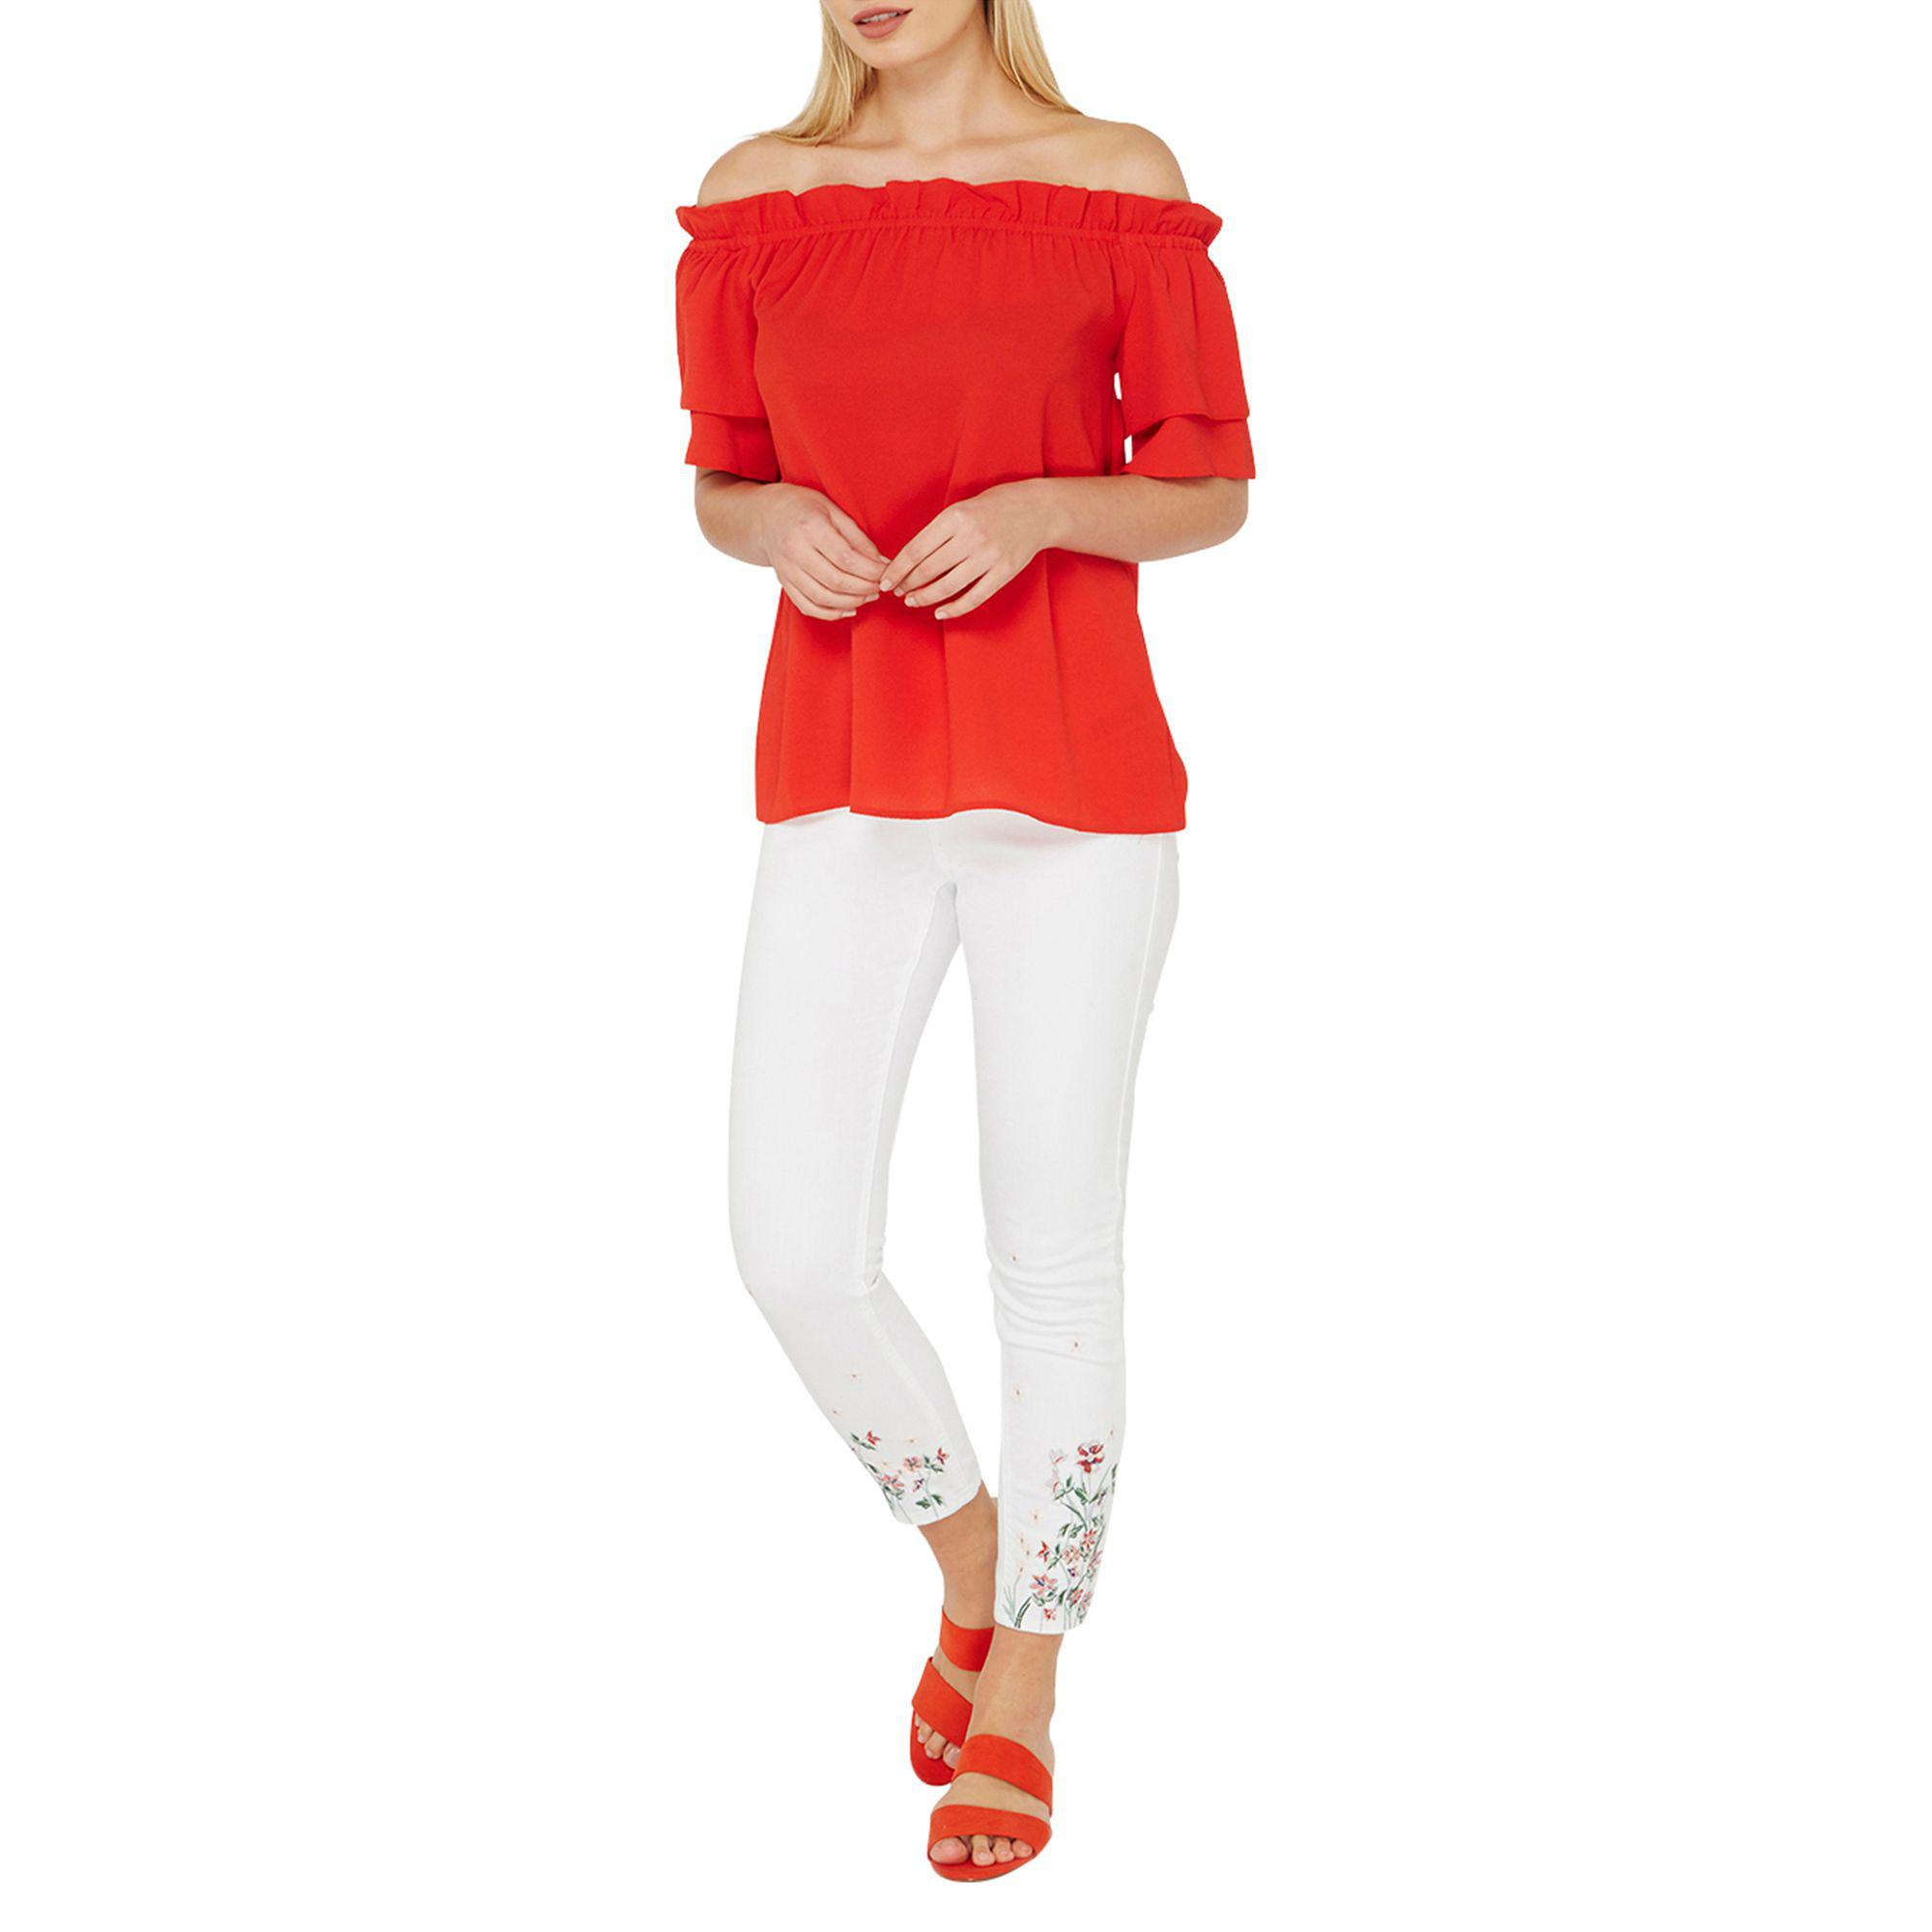 ebe9e6cb070 Dorothy Perkins Red Frill Sleeve Bardot Top in Red - Lyst